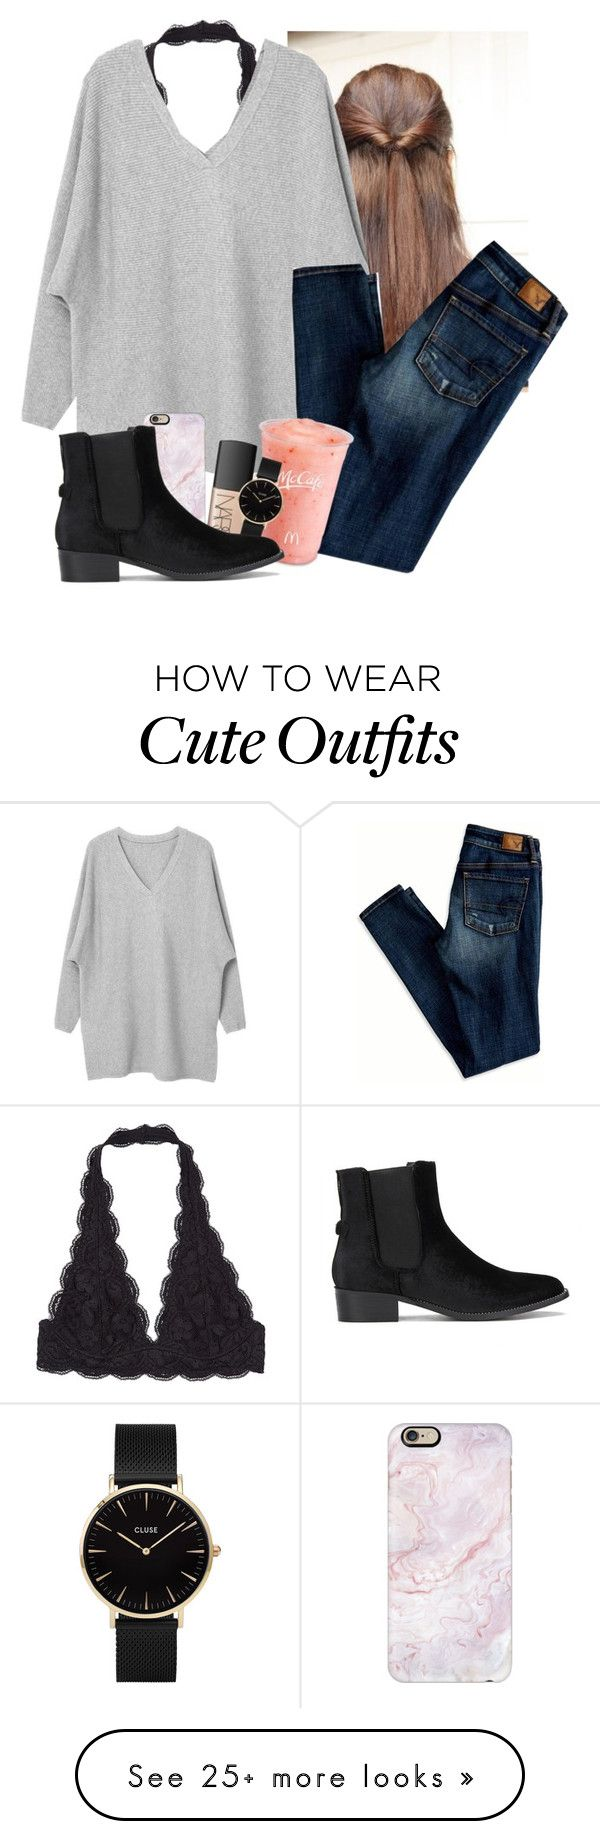 """""""I love Twilight"""" by pao-rj on Polyvore featuring American Eagle Outfitters, Disney, Casetify, NARS Cosmetics and CLUSE"""